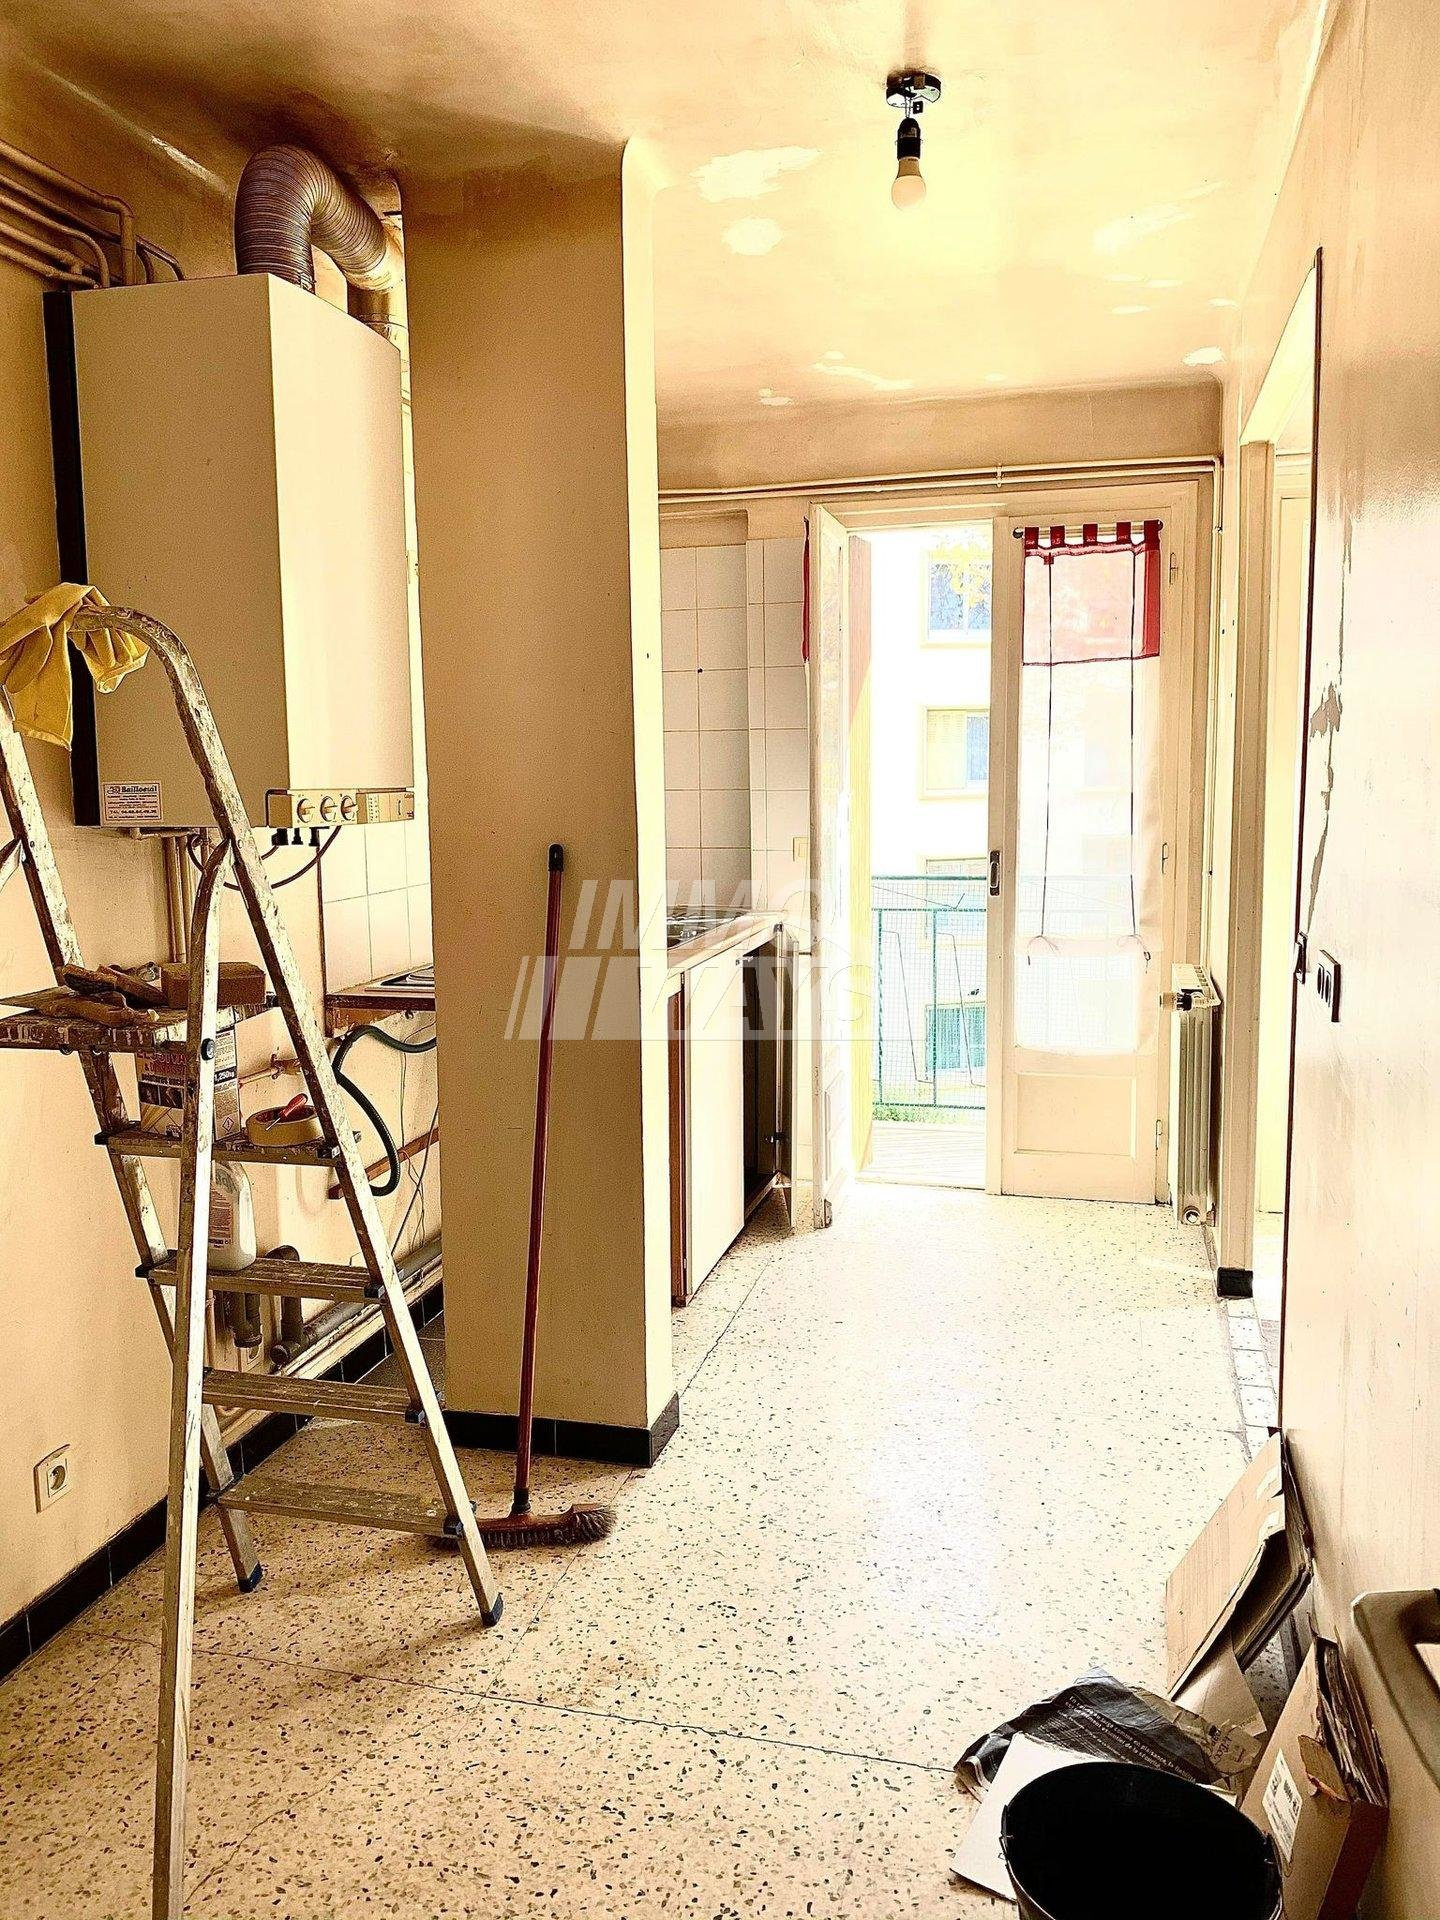 property_areas:3 property_flooring:4